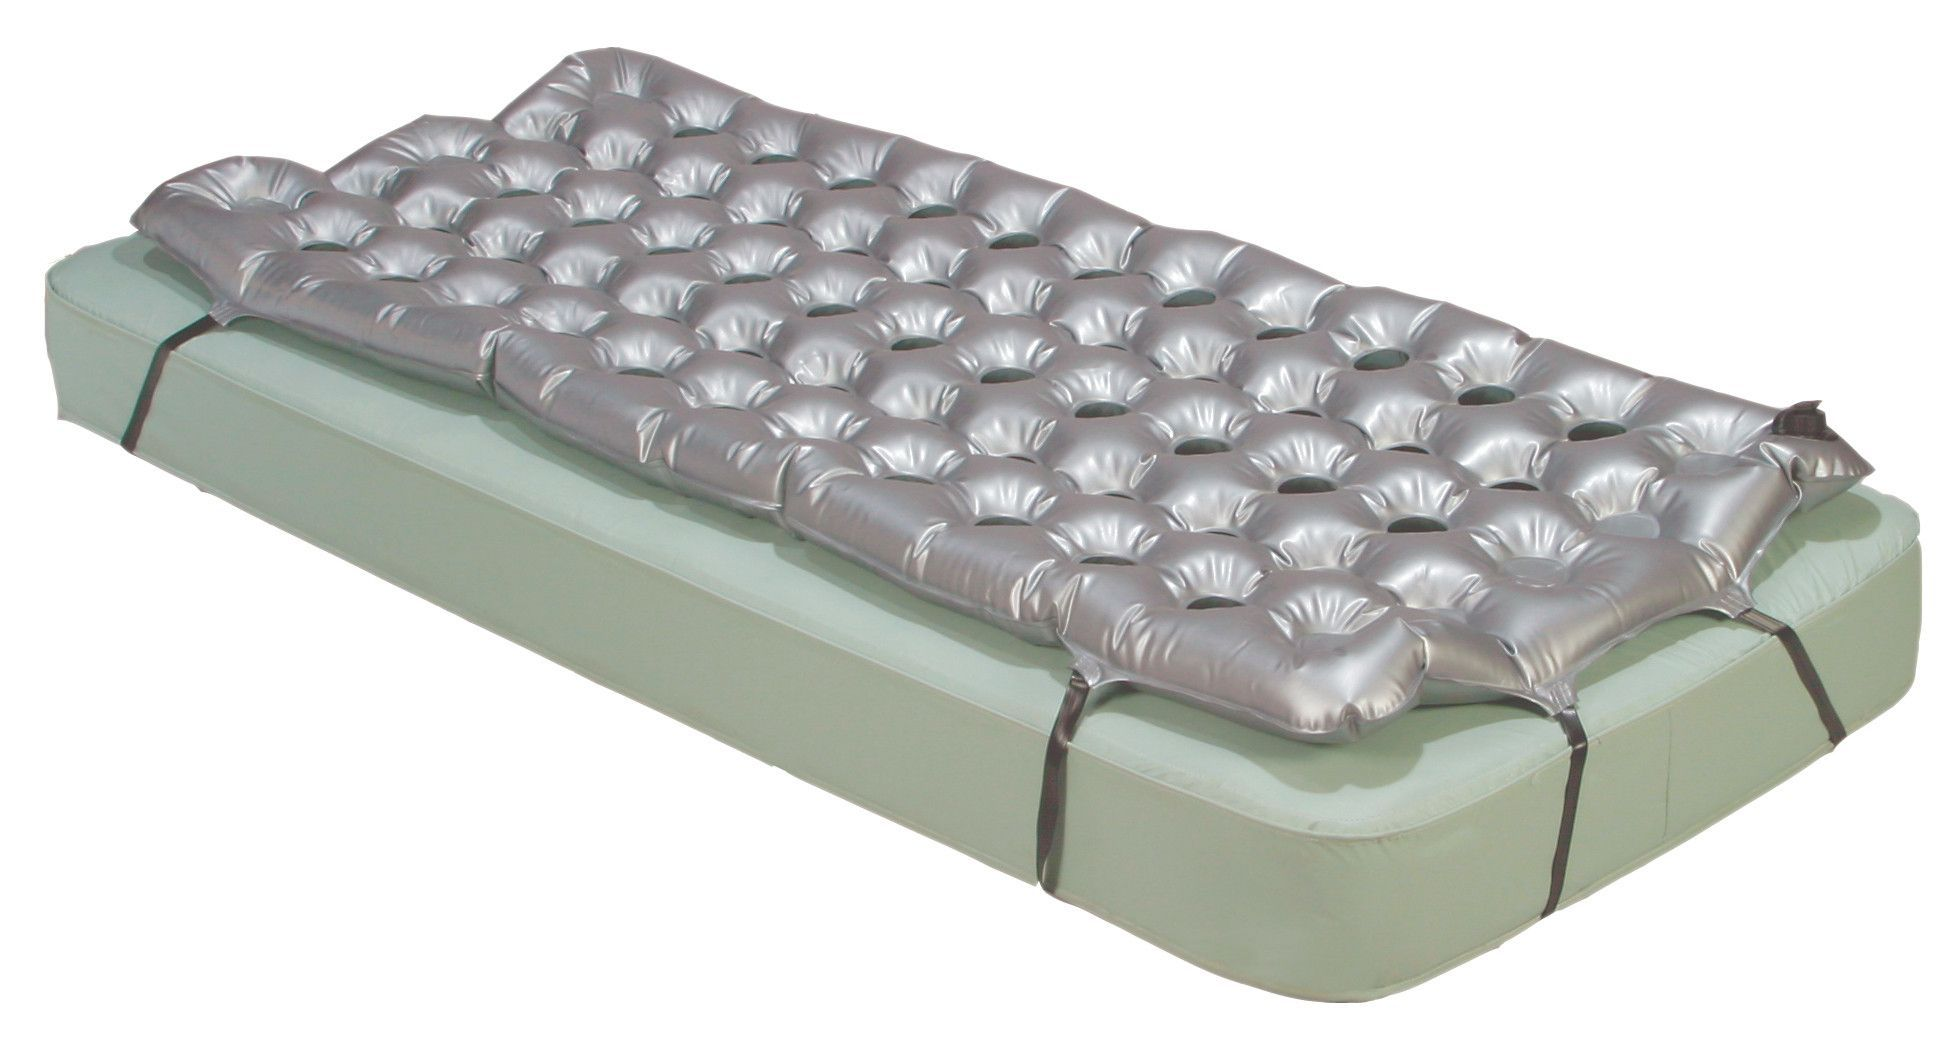 Air Mattress Overlay Support Surface by Drive Medical